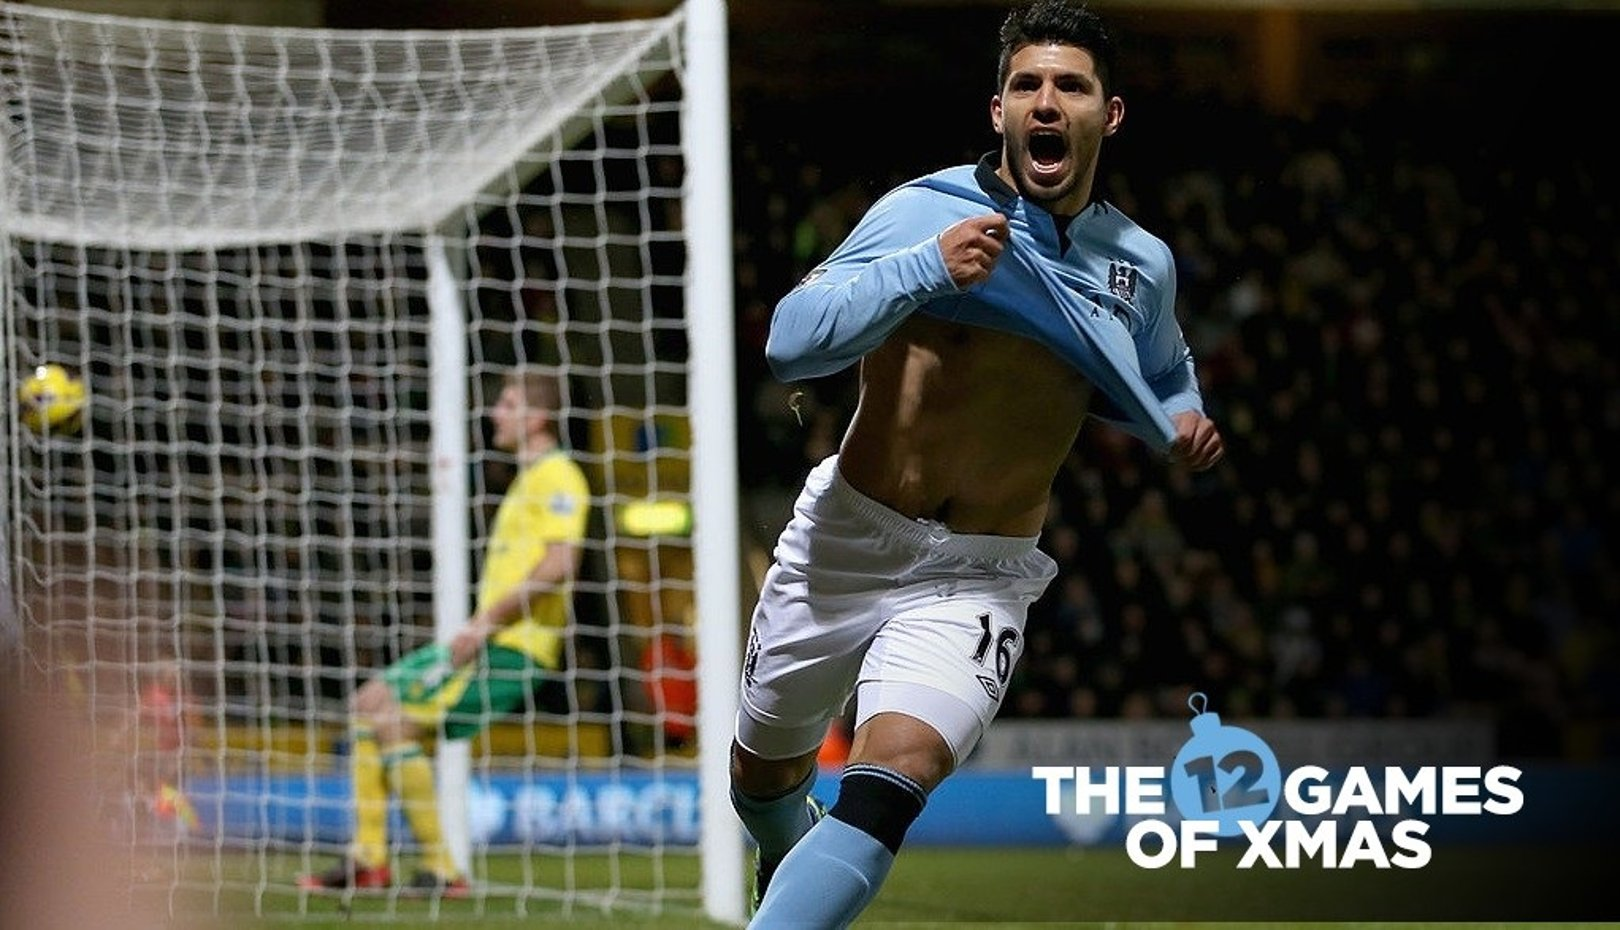 The 12 games of Xmas: Seven-goal thriller at Carrow Road